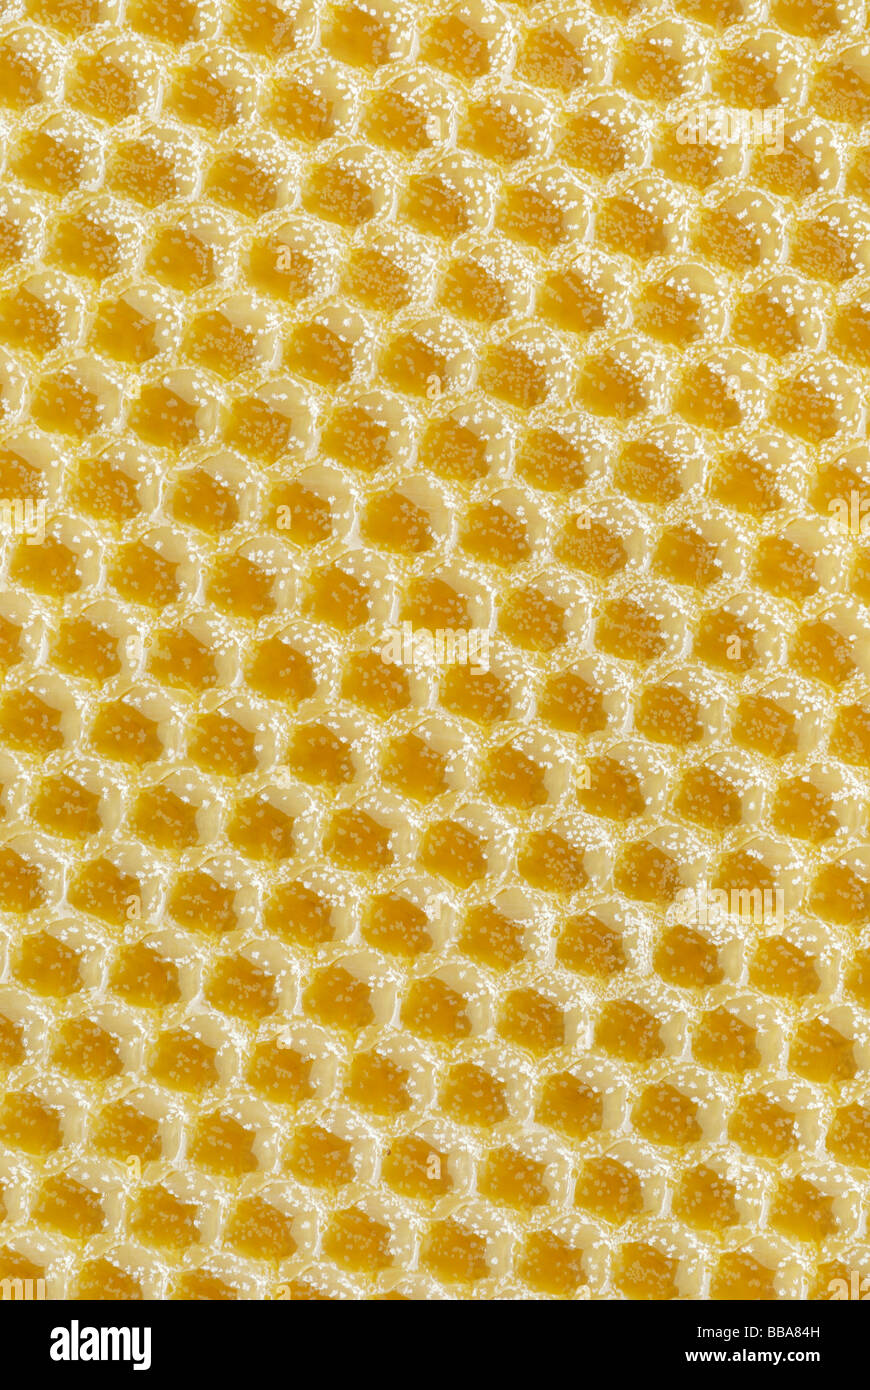 Honeycomb base cast from beeswax with wax crystals on the surface - Stock Image